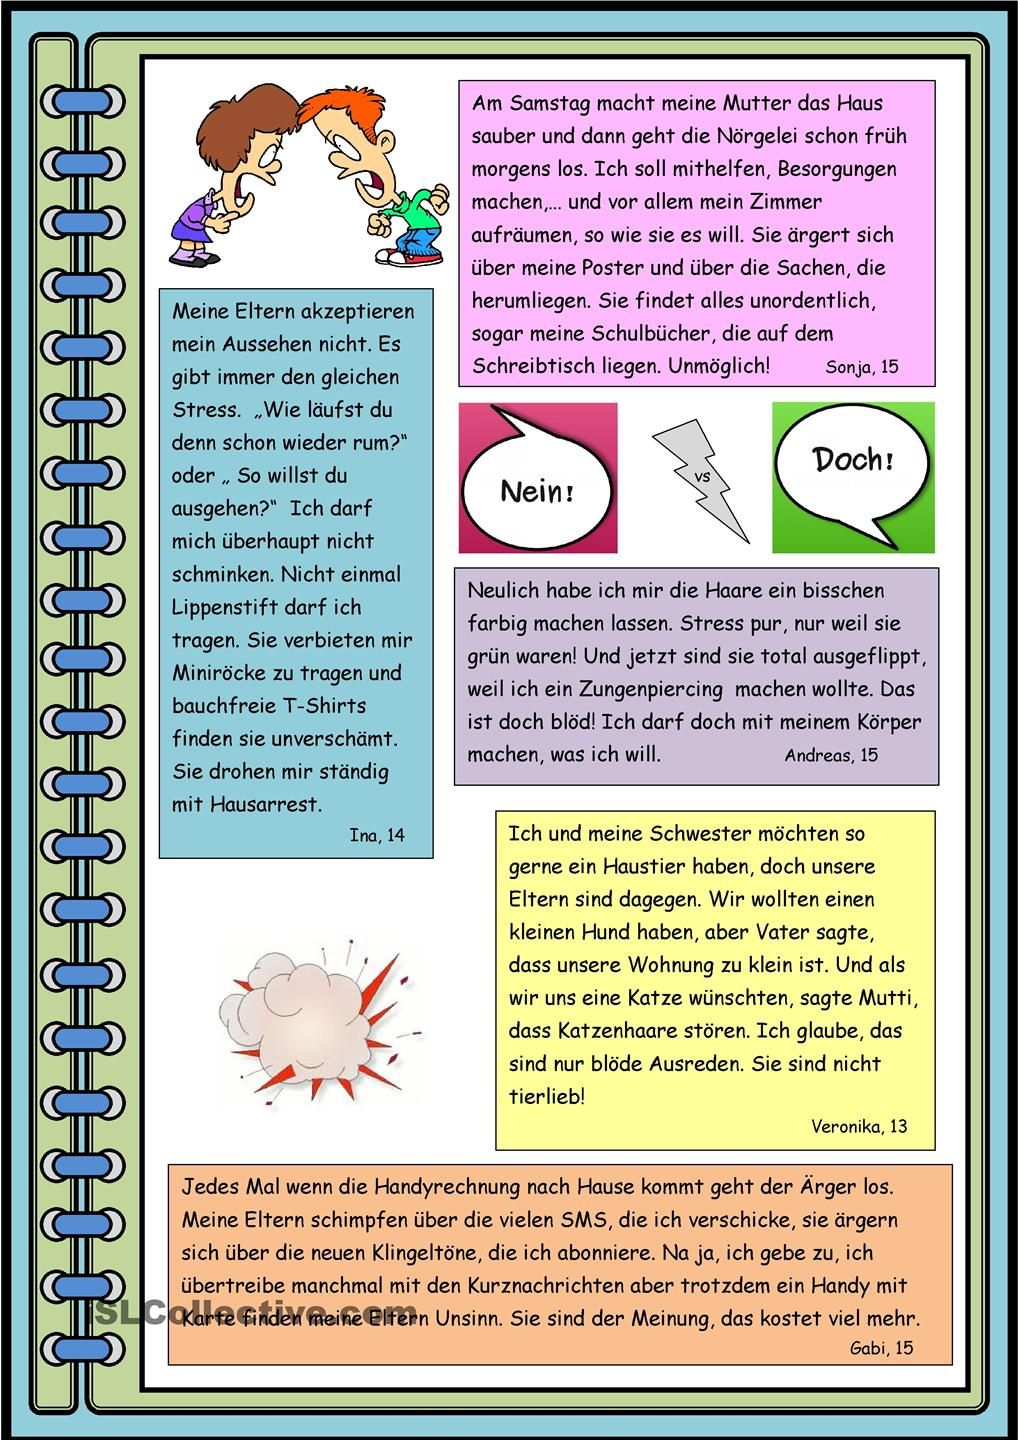 Pin By Carla Ramos On German Words Texts Word Search Puzzle